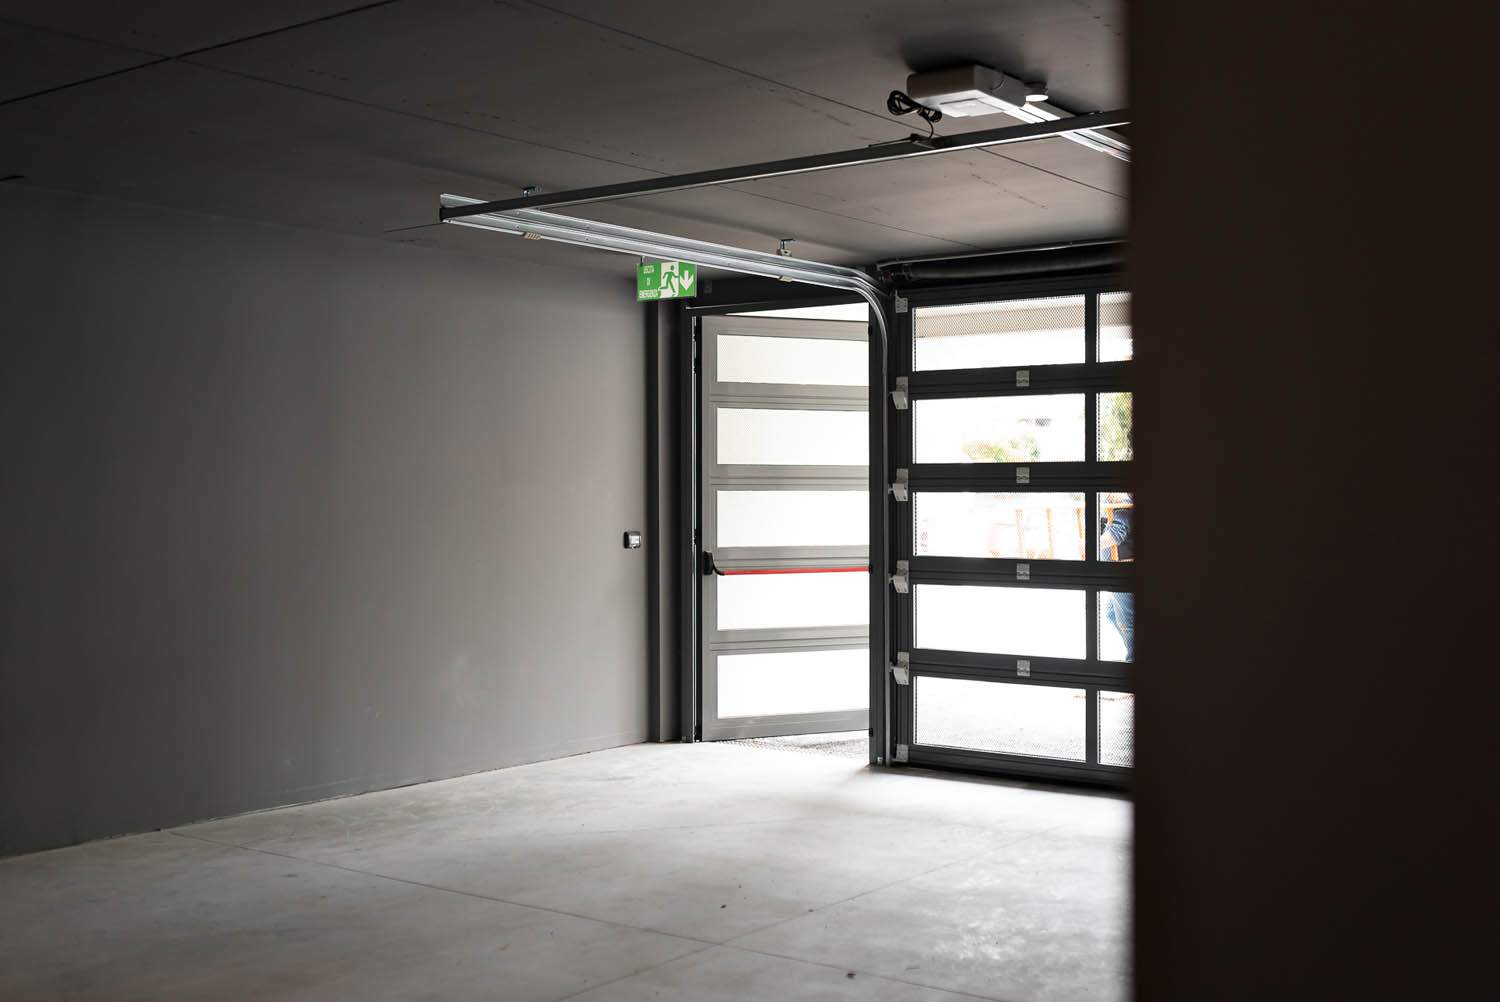 © DueG Studio Fotografico, courtesy of Silvelox Automatic doors for access to the parking areas